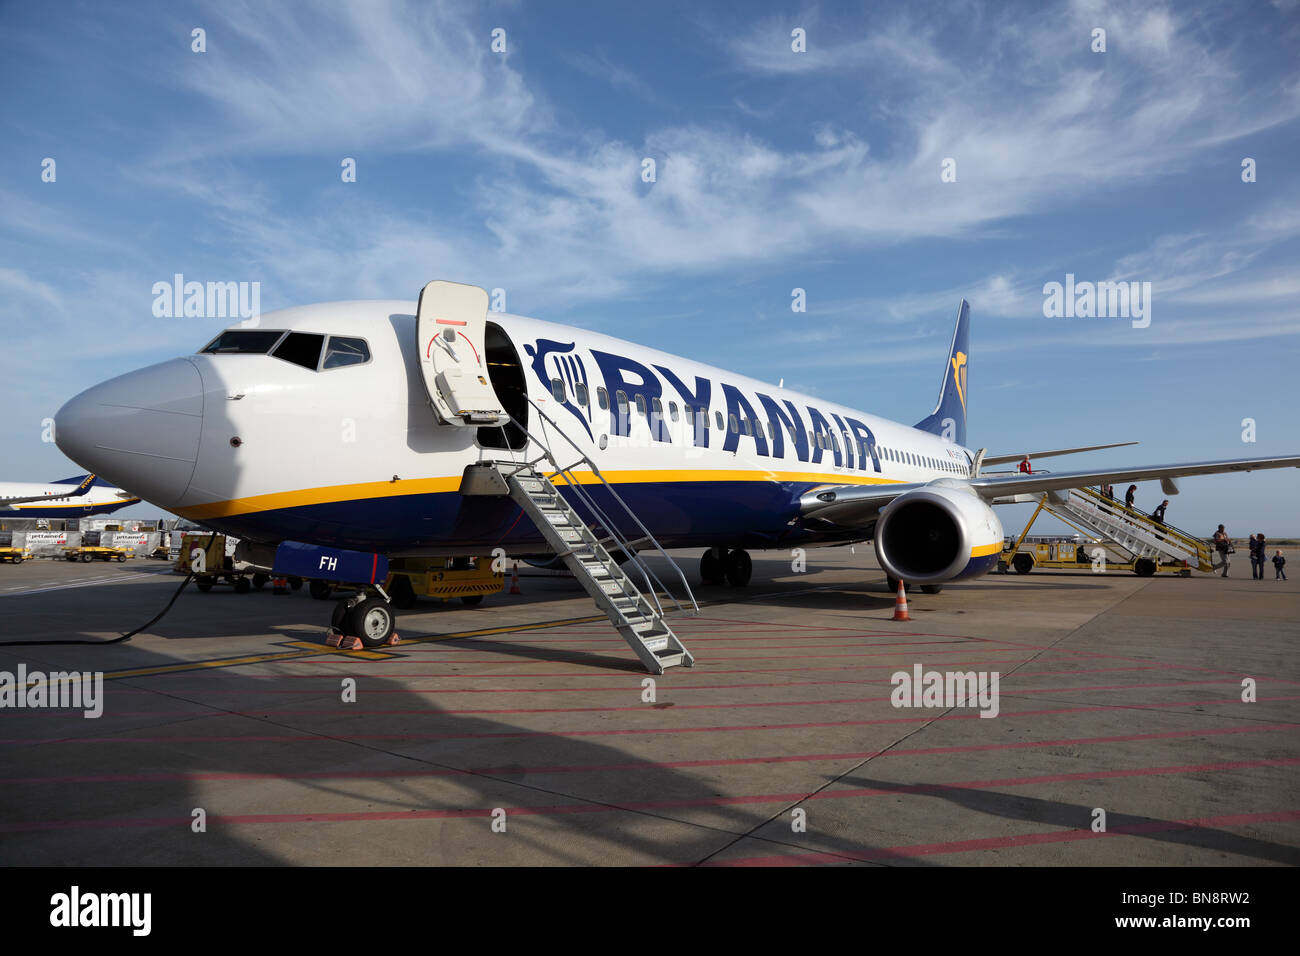 Ryanair aircraft at the airport of Faro, Portugal. June 20th, 2010 - Stock Image